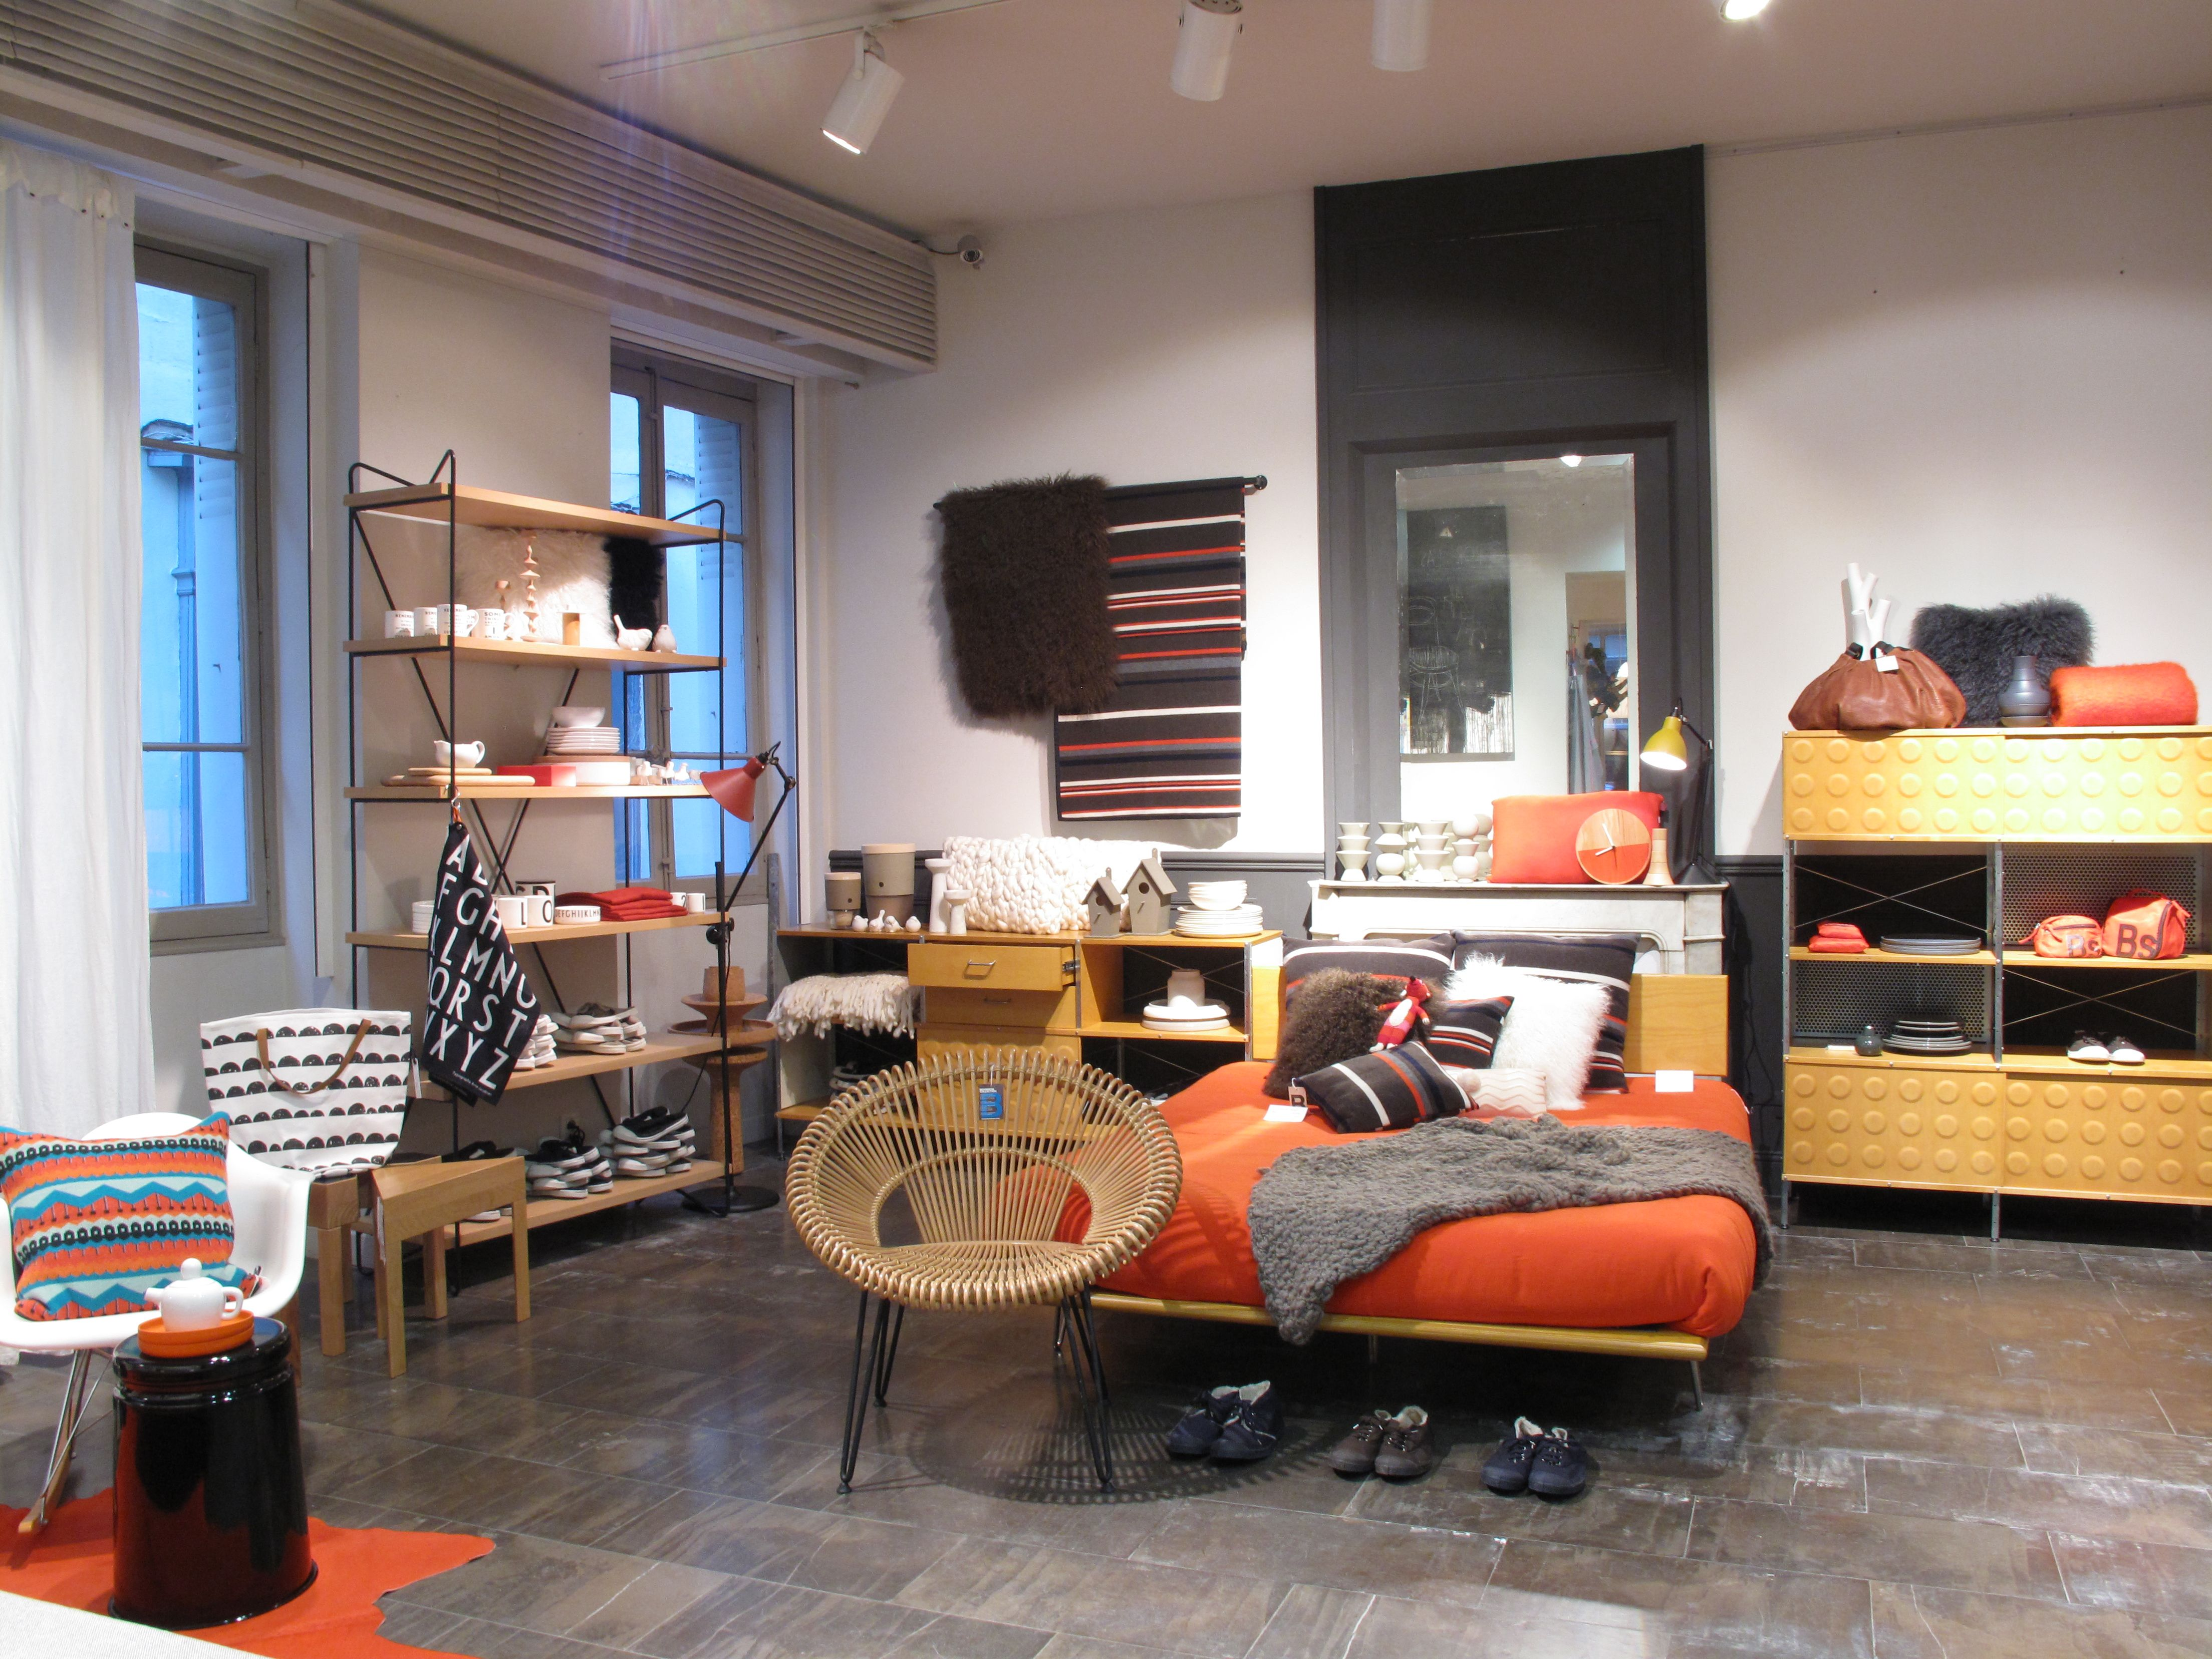 Image from Modernica retailer in France Home Autour Du Monde